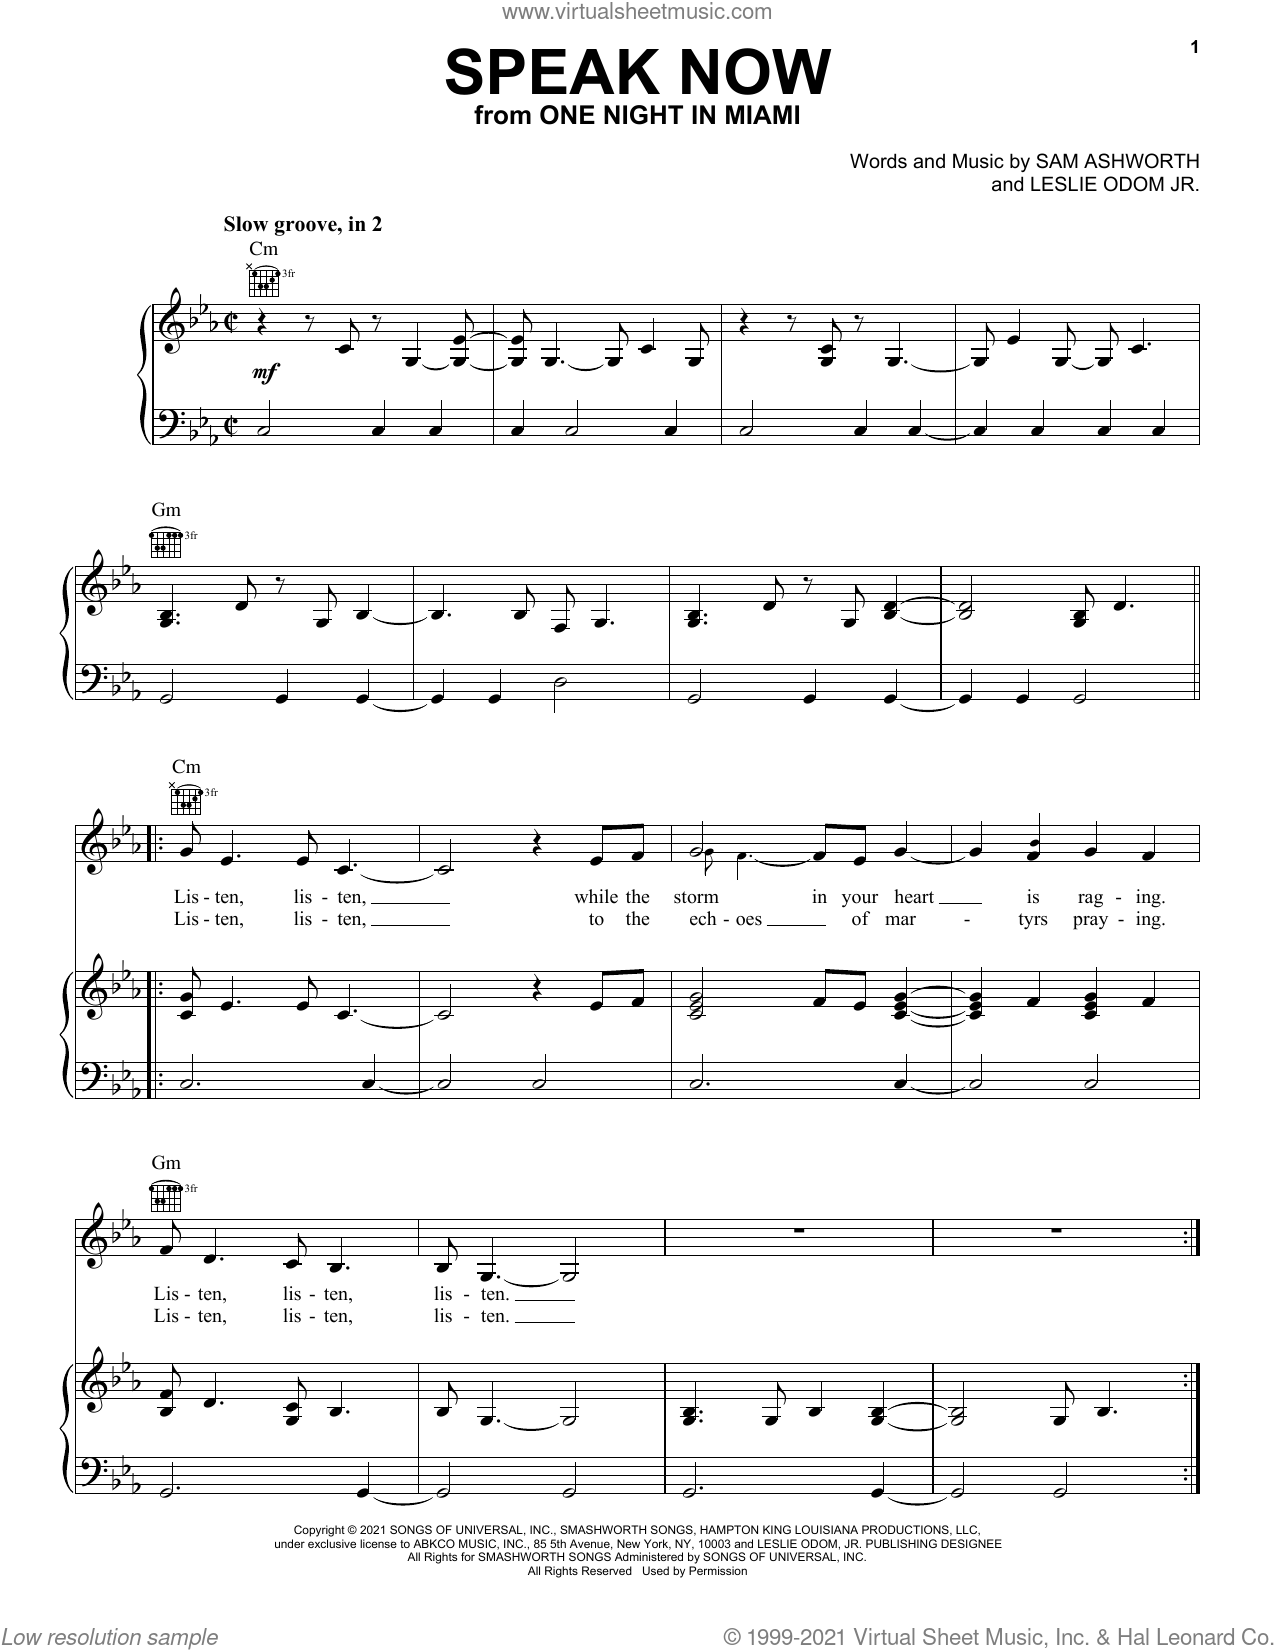 Speak Now (from One Night In Miami...) sheet music for voice, piano or guitar by Leslie Odom Jr. and Sam Ashworth, intermediate skill level